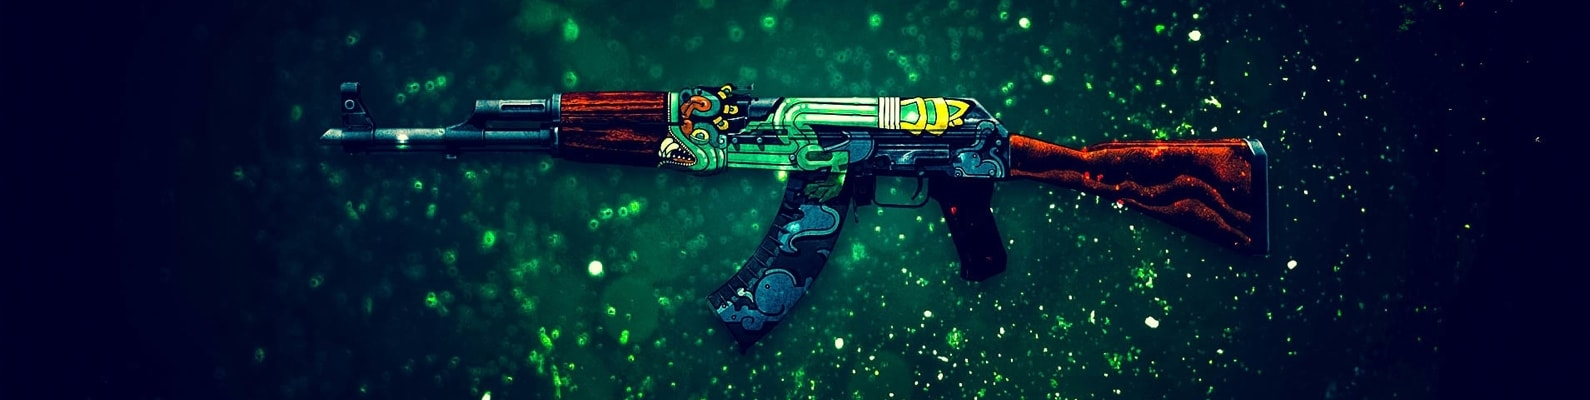 АК-47, CS GO, огненный змей, Fire Serpent, Counter-Strike Global Offensive